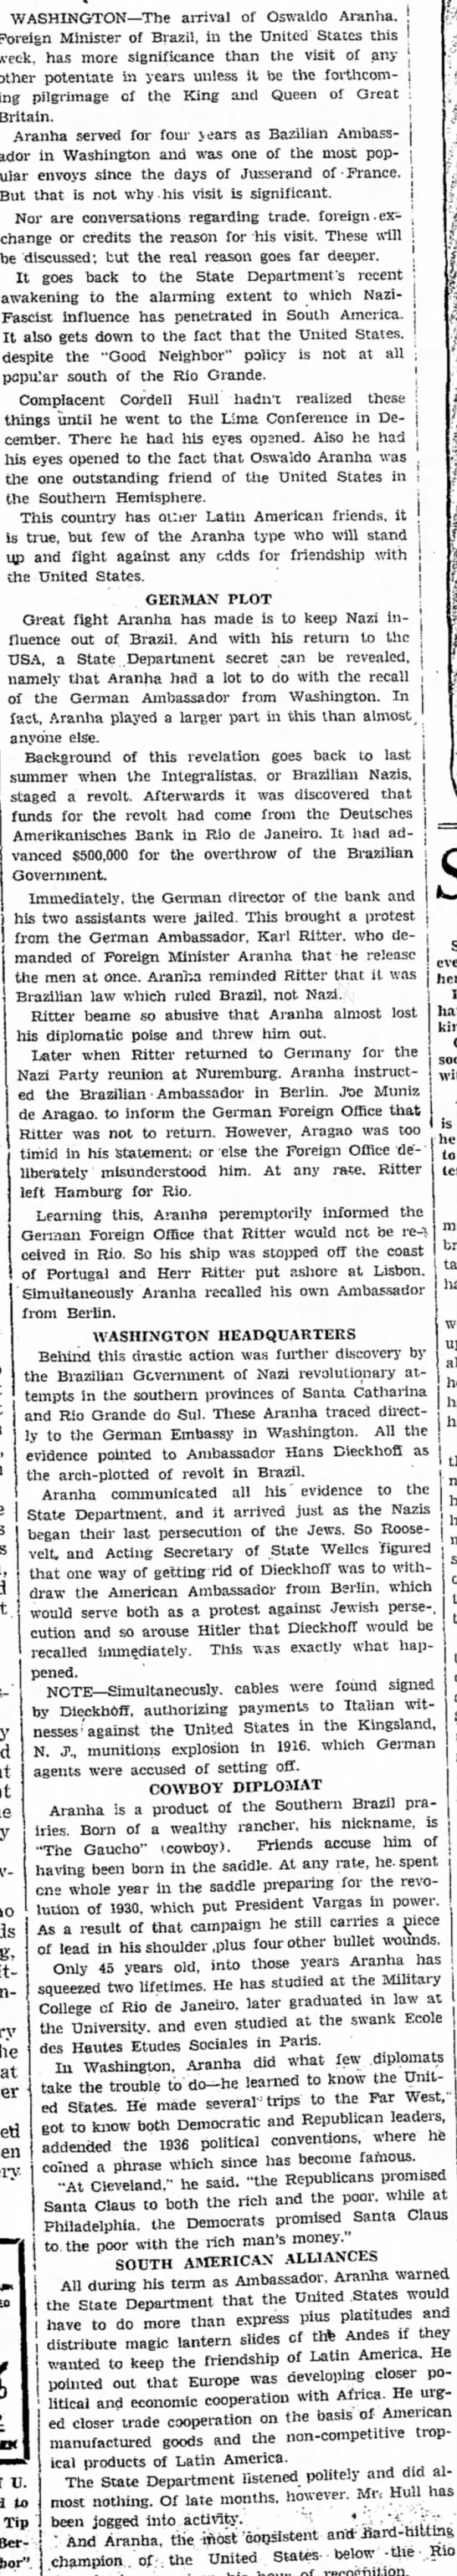 Aranha - 1 - WASHINGTON—The arrival of Oswaldo Aranha,...